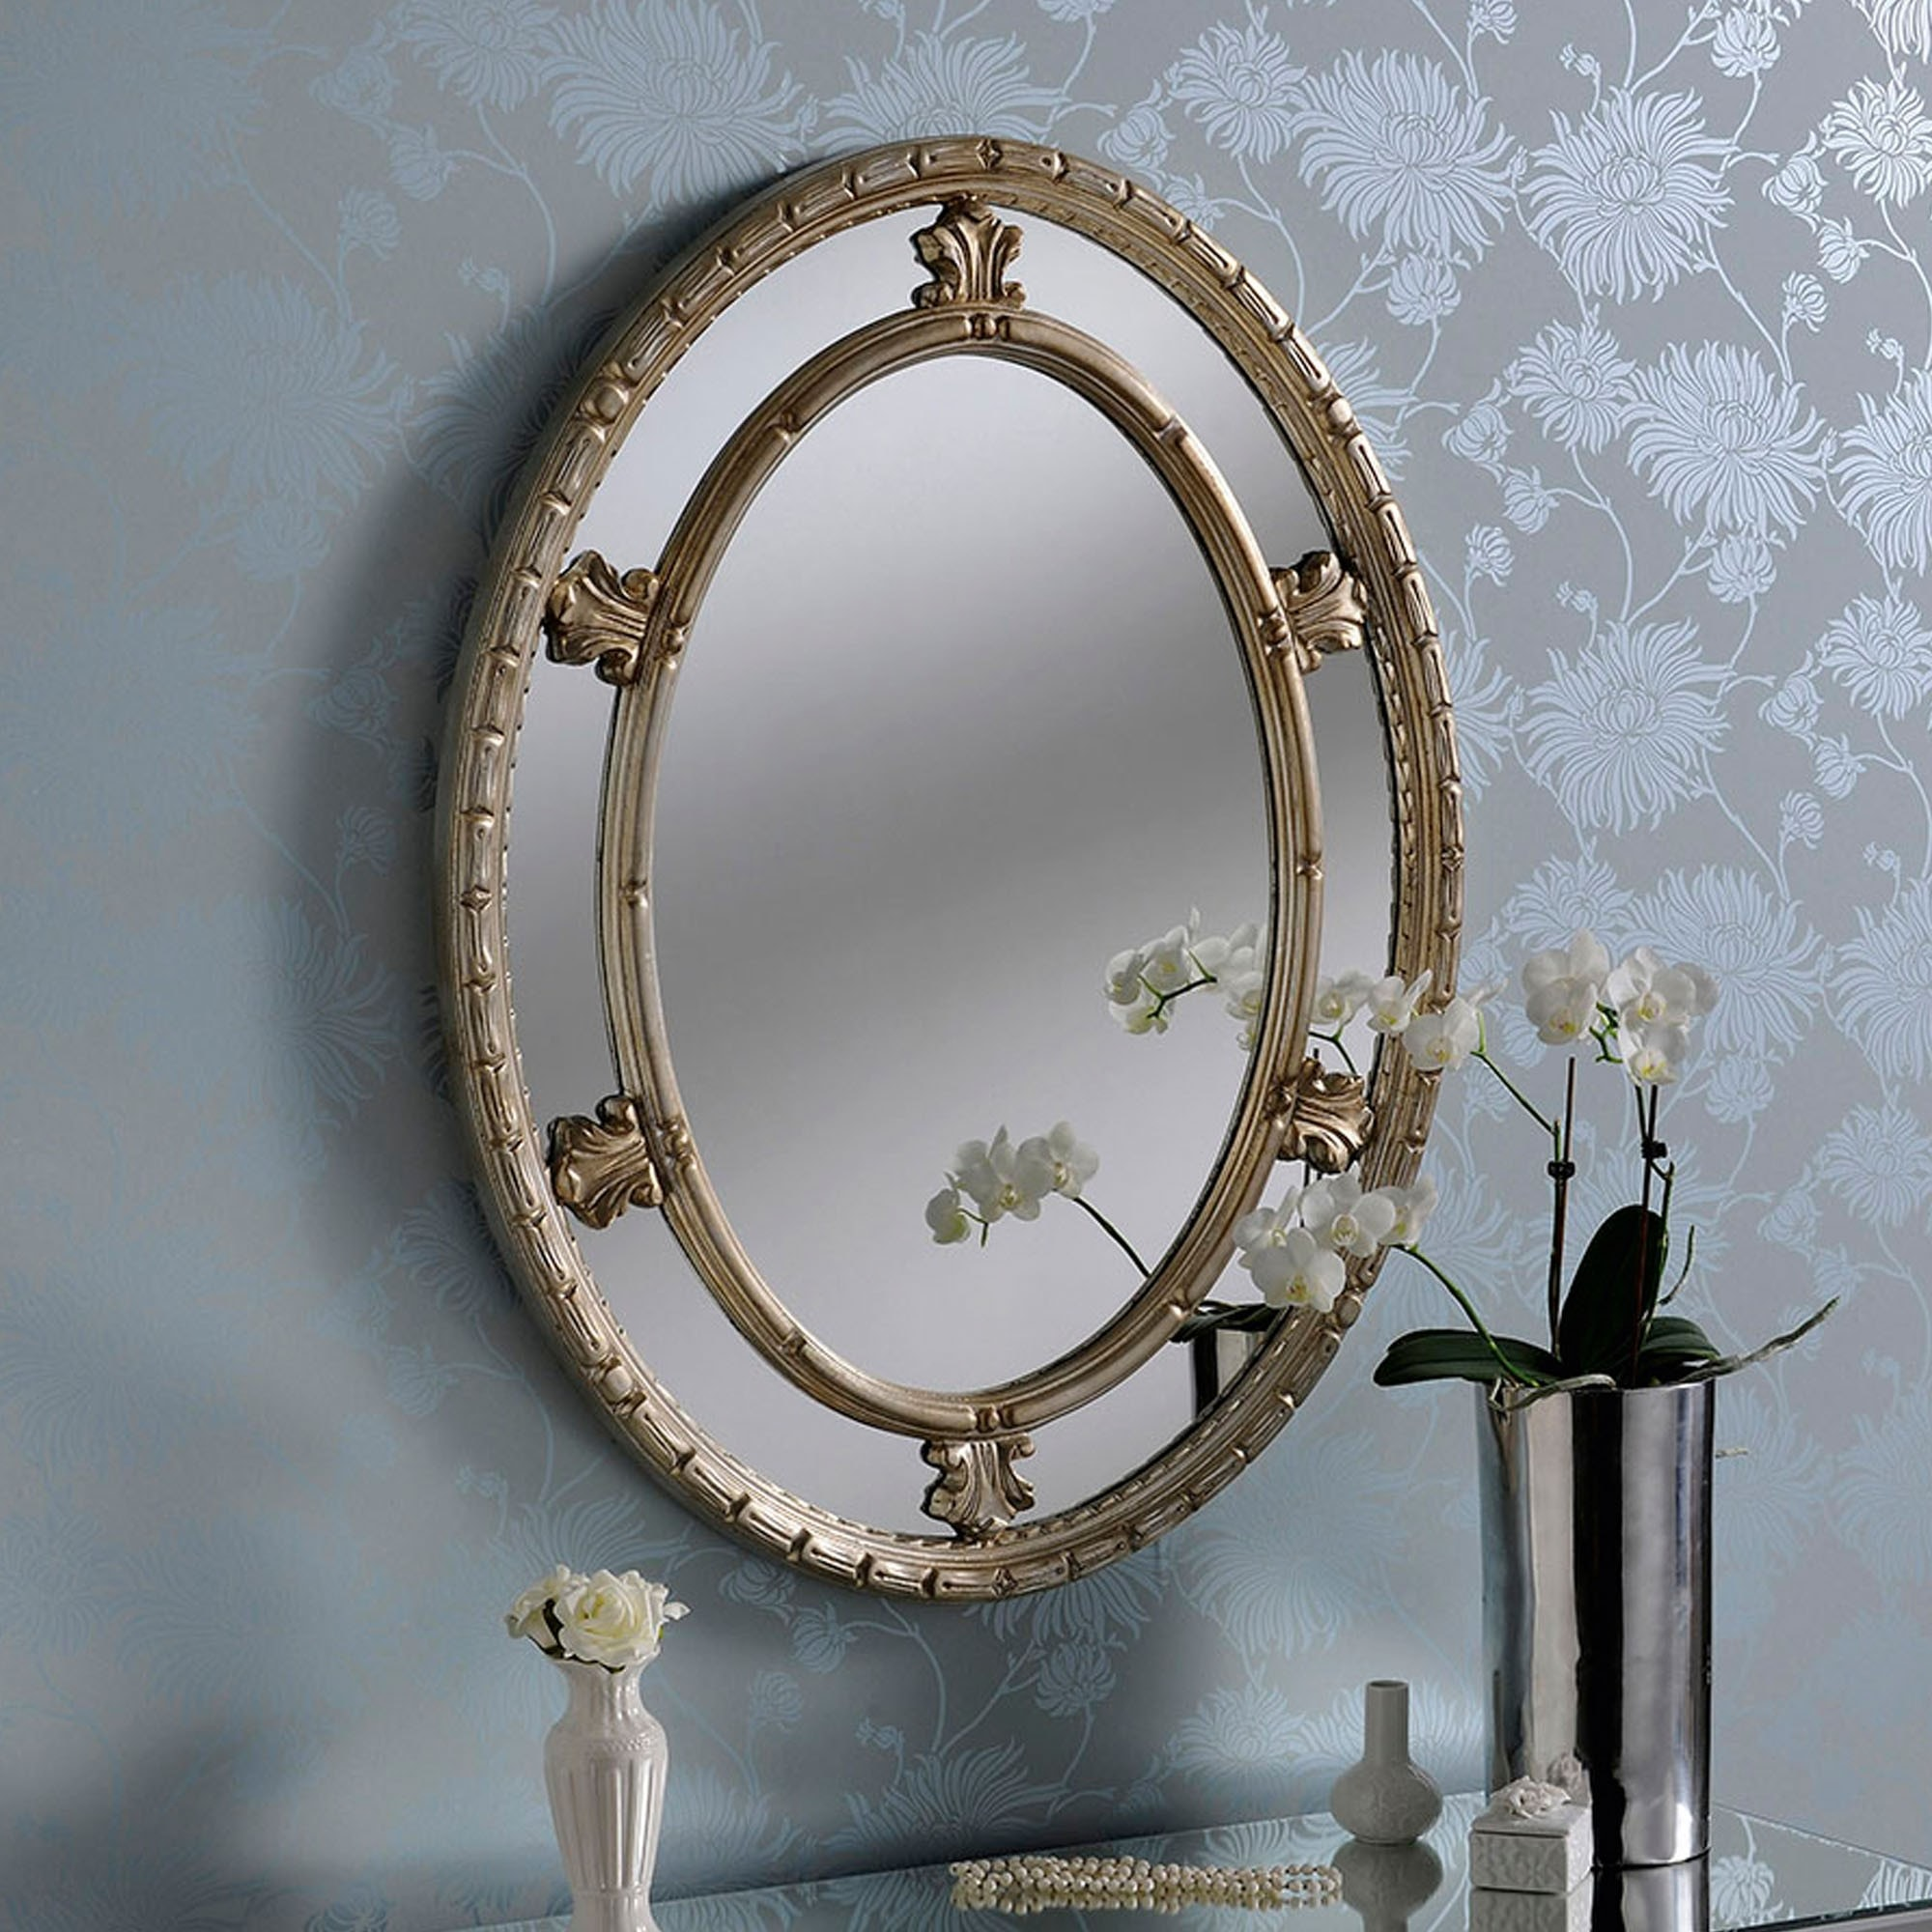 Antique French Style Silver Circular Wall Mirror Wall Mirrors